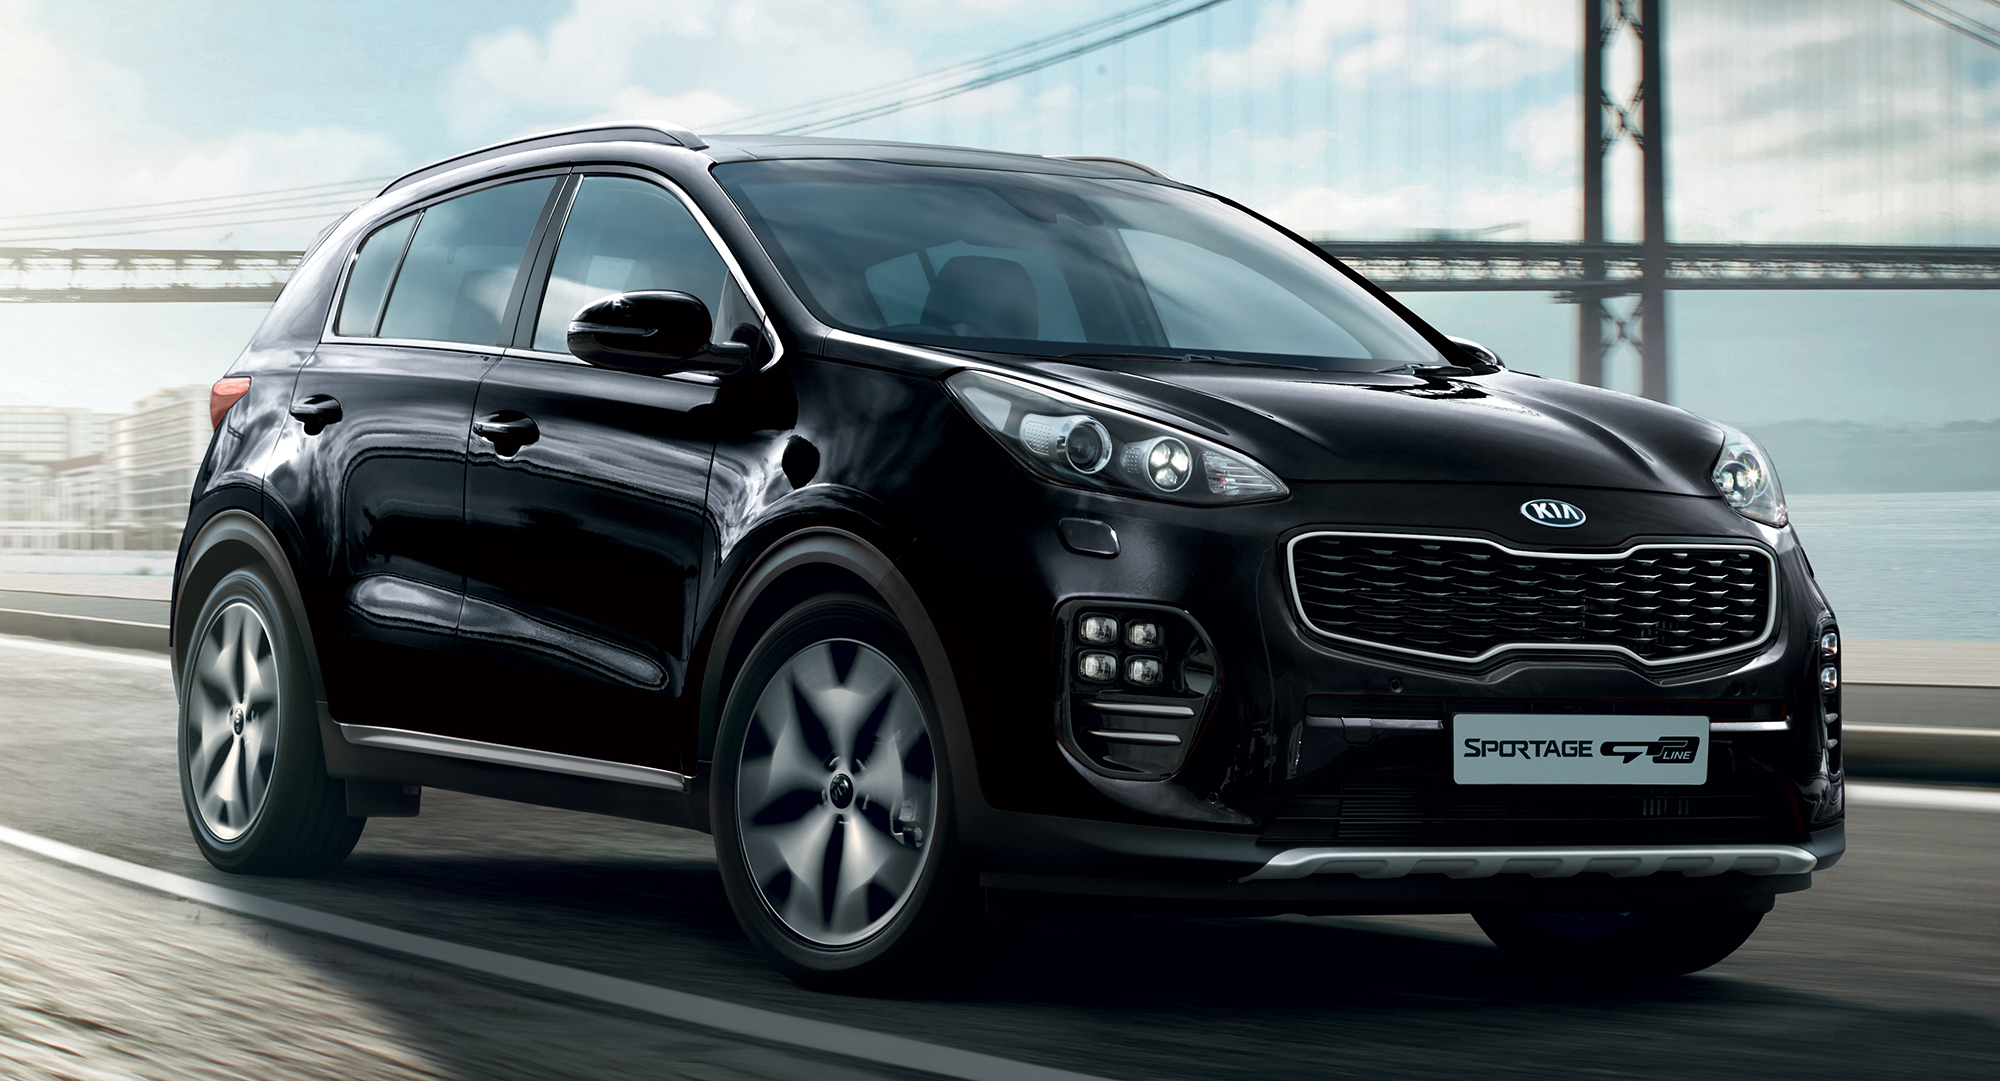 kia sportage gt crdi diesel now in malaysia rm160k image 650080. Black Bedroom Furniture Sets. Home Design Ideas